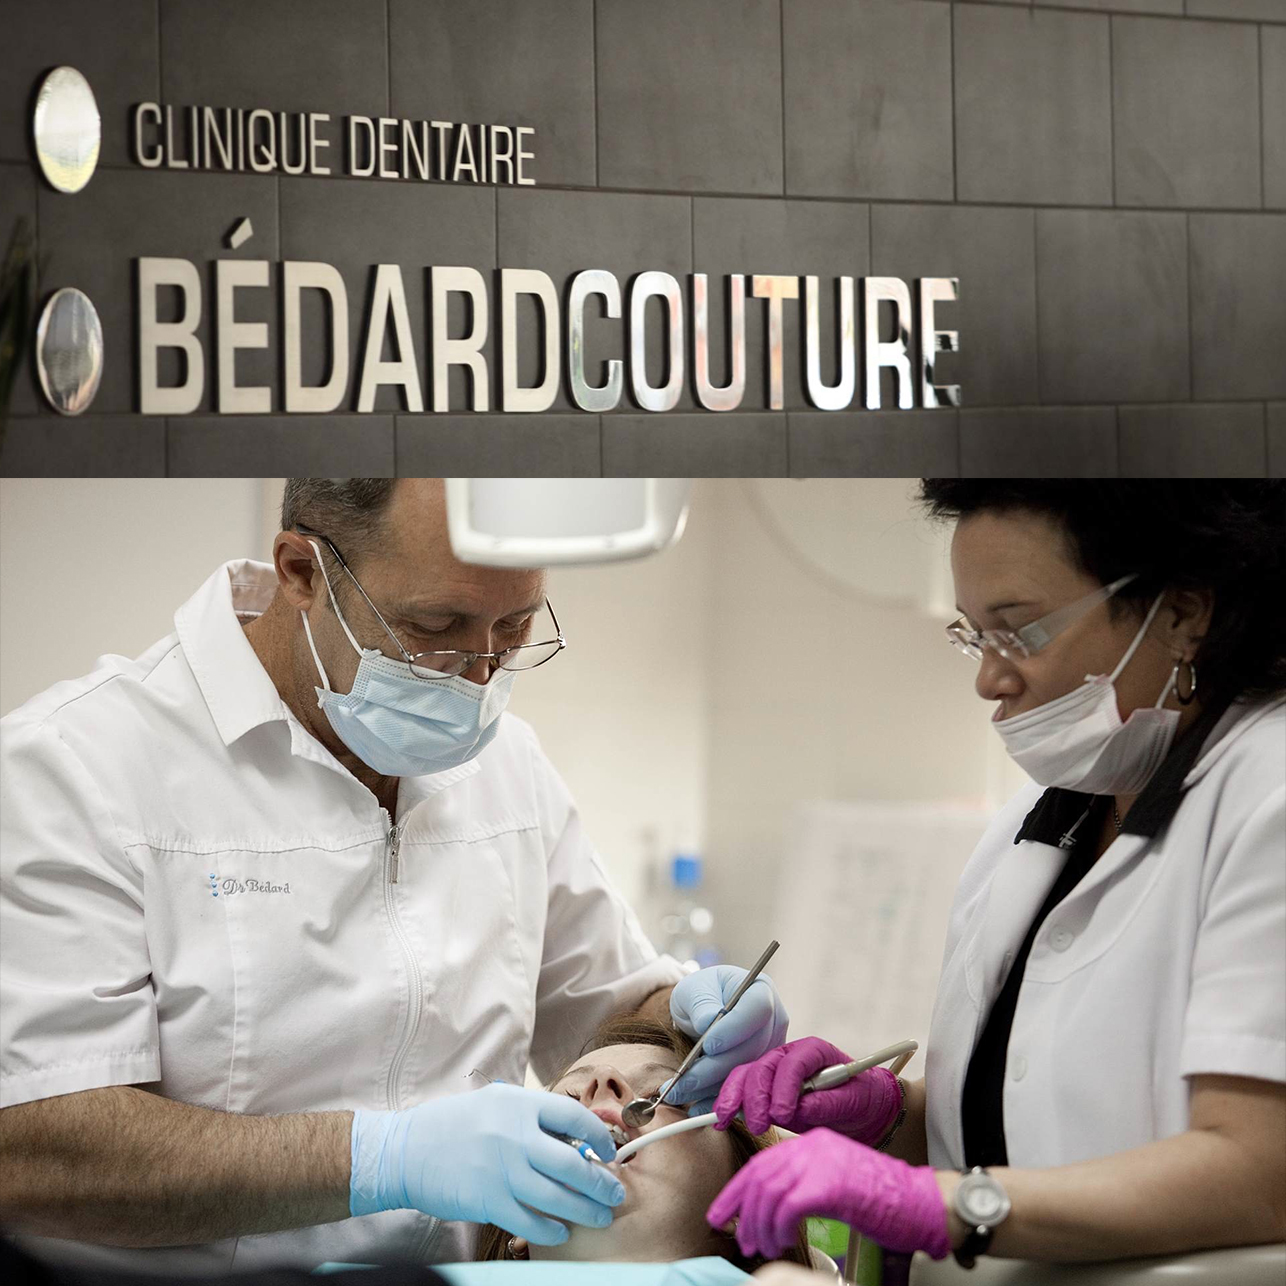 Clinique Dentaire Bédard Couture - Traitement de blanchiment des dents - 450-651-9935